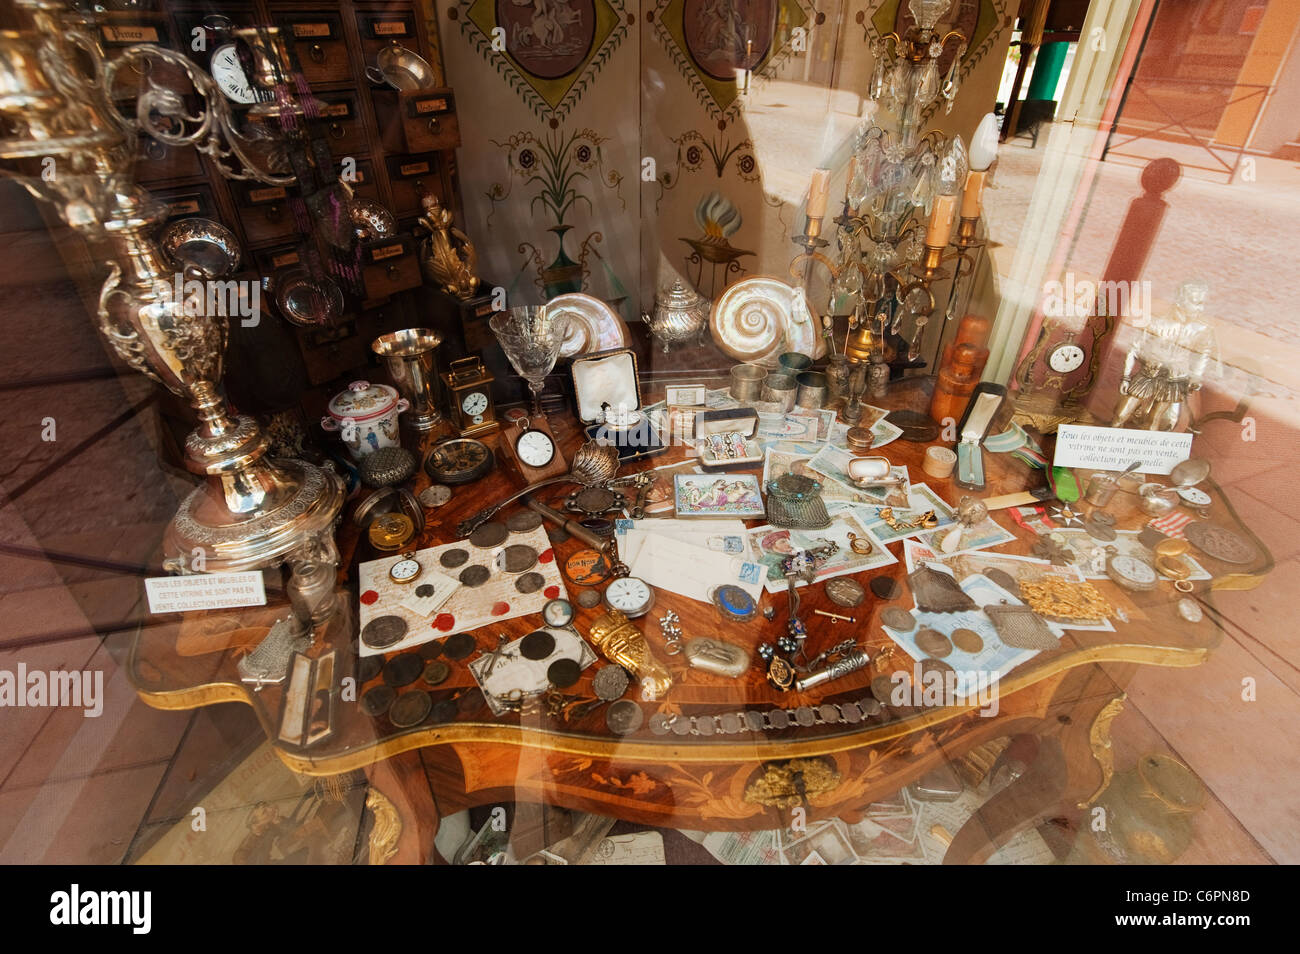 Antique shop window display in Avallon, Burgundy, France - Stock Image